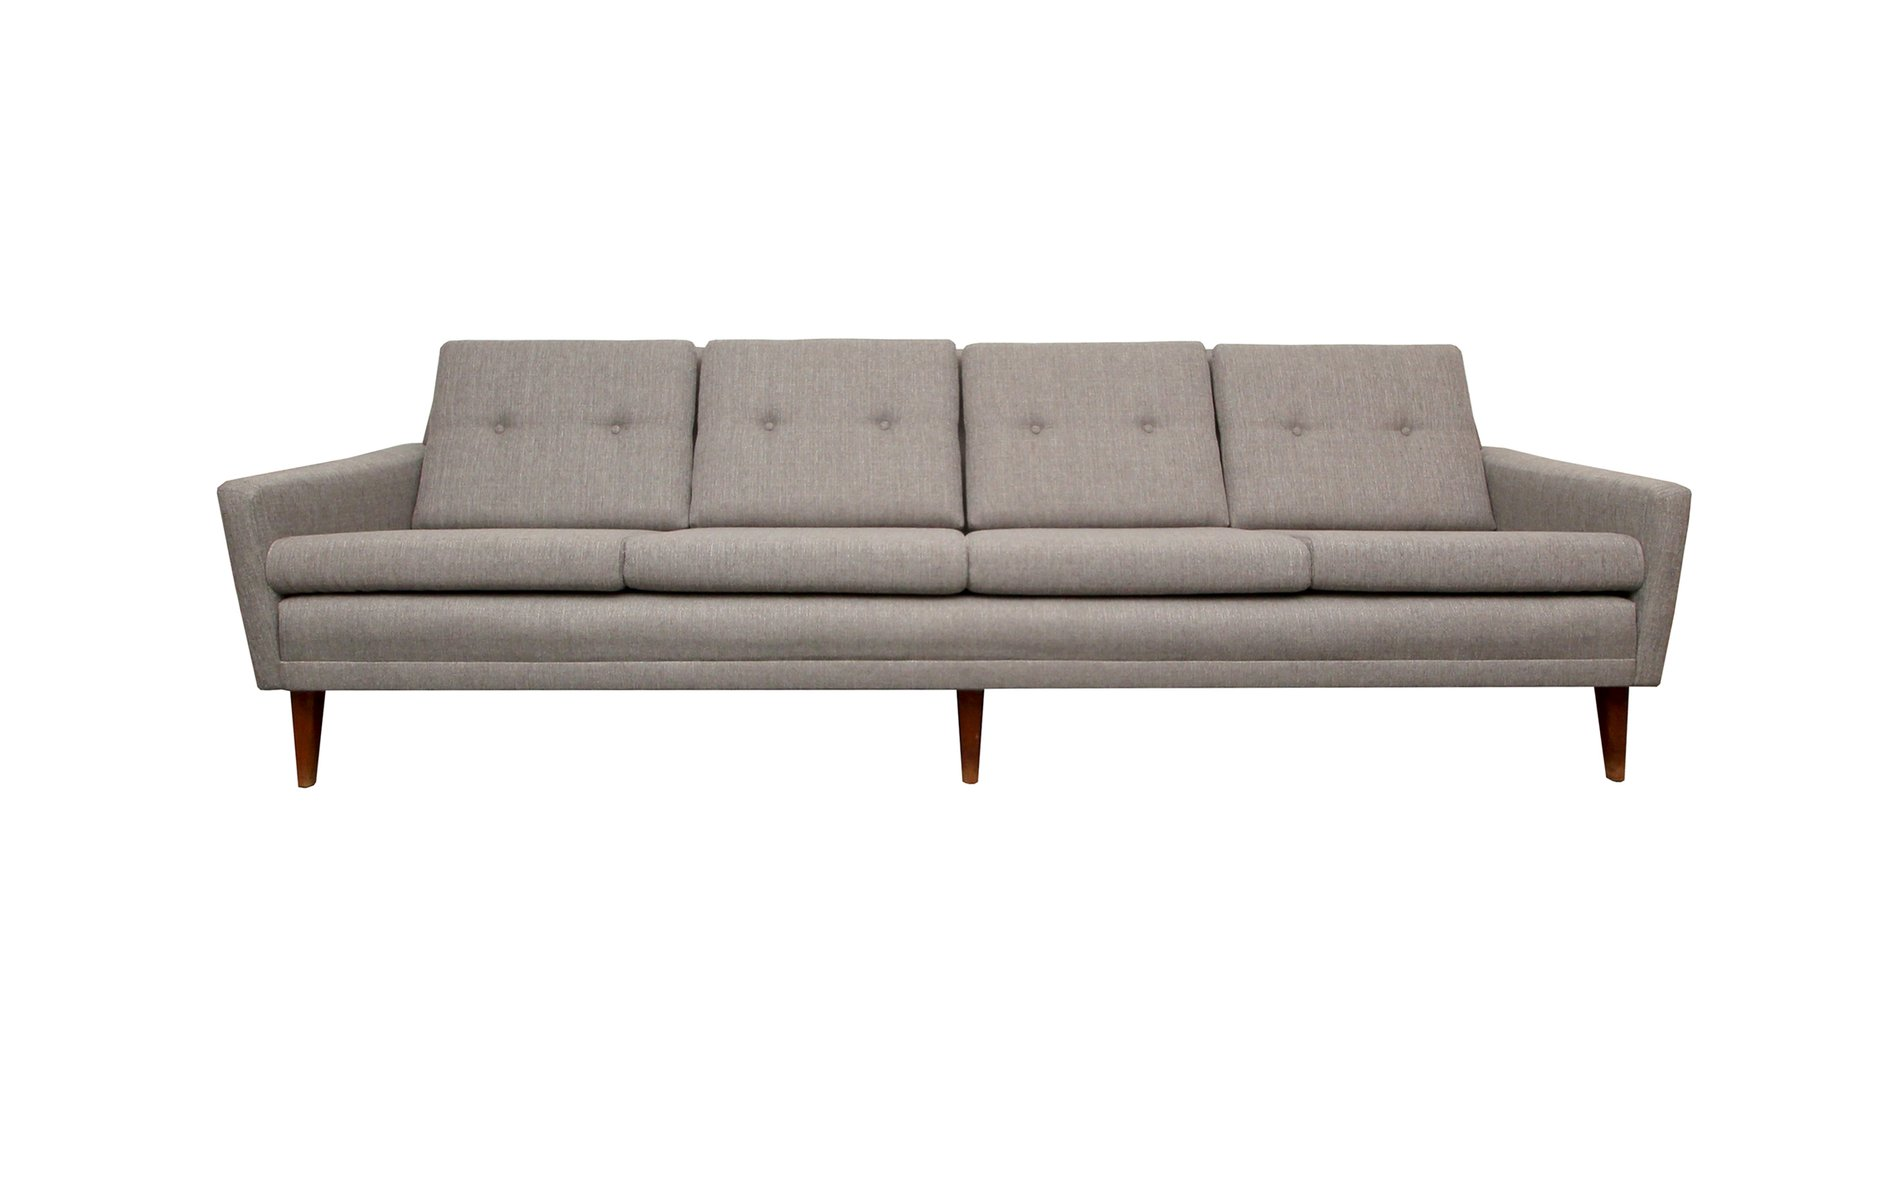 Light Grey Danish Sofa, 1950s